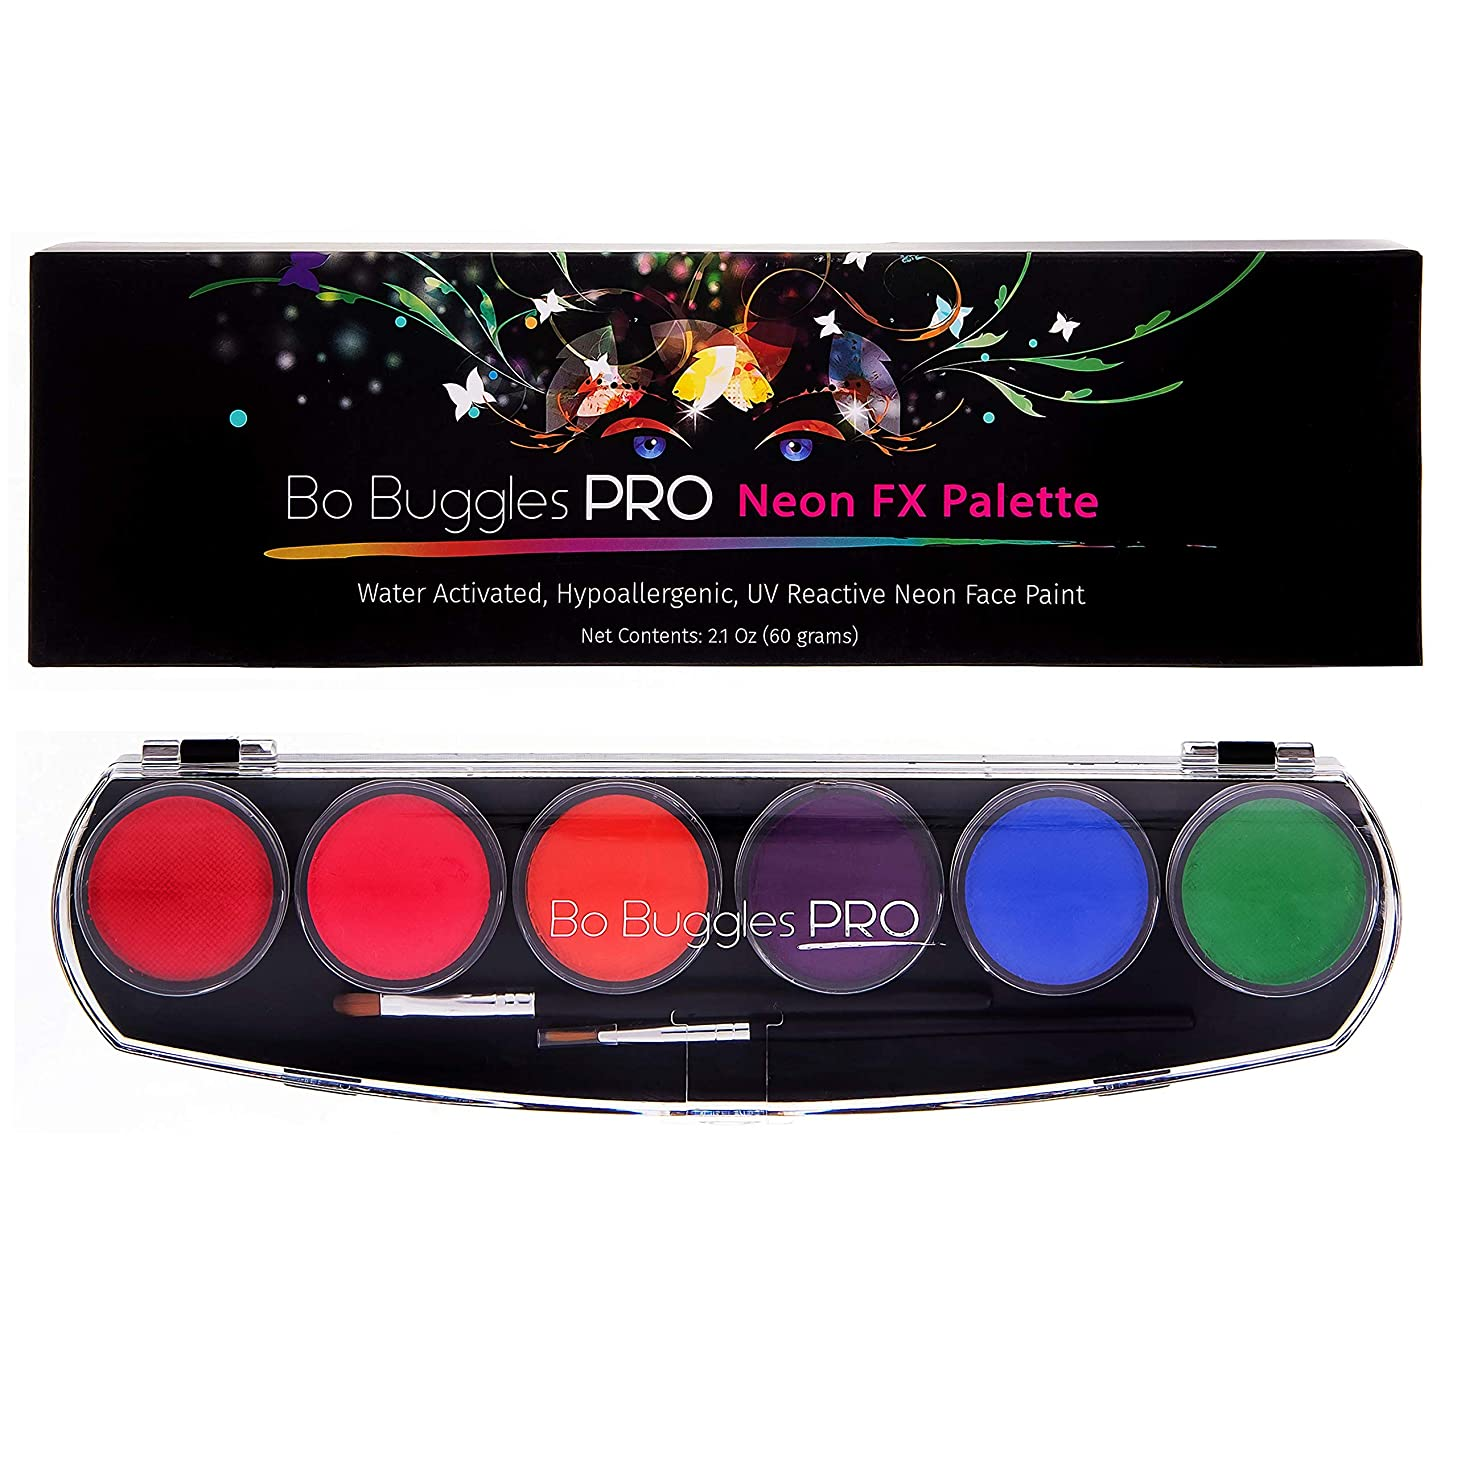 Bo Buggles Professional Face Paint Kit Neon UV Reactive. Water-Activated Face Painting Palette. Loved by Pro Painters for Vibrant Detailed Designs. 12x10 Gram Paints +2 Brushes. Safe Quality Makeup